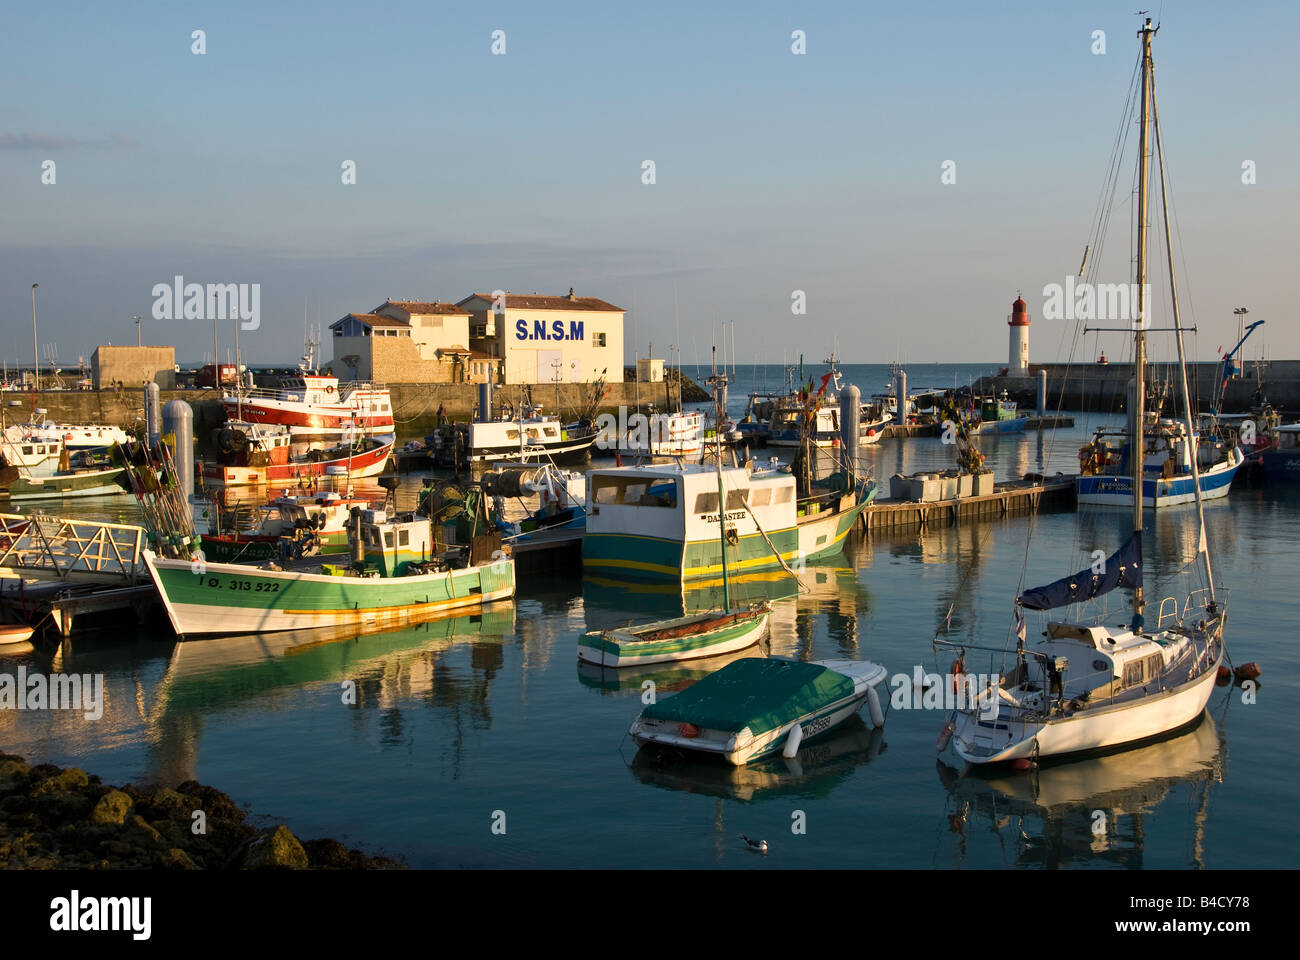 Harbour in la cotiniere ile d 39 oleron france stock photo royalty free ima - Ile d oleron que faire ...